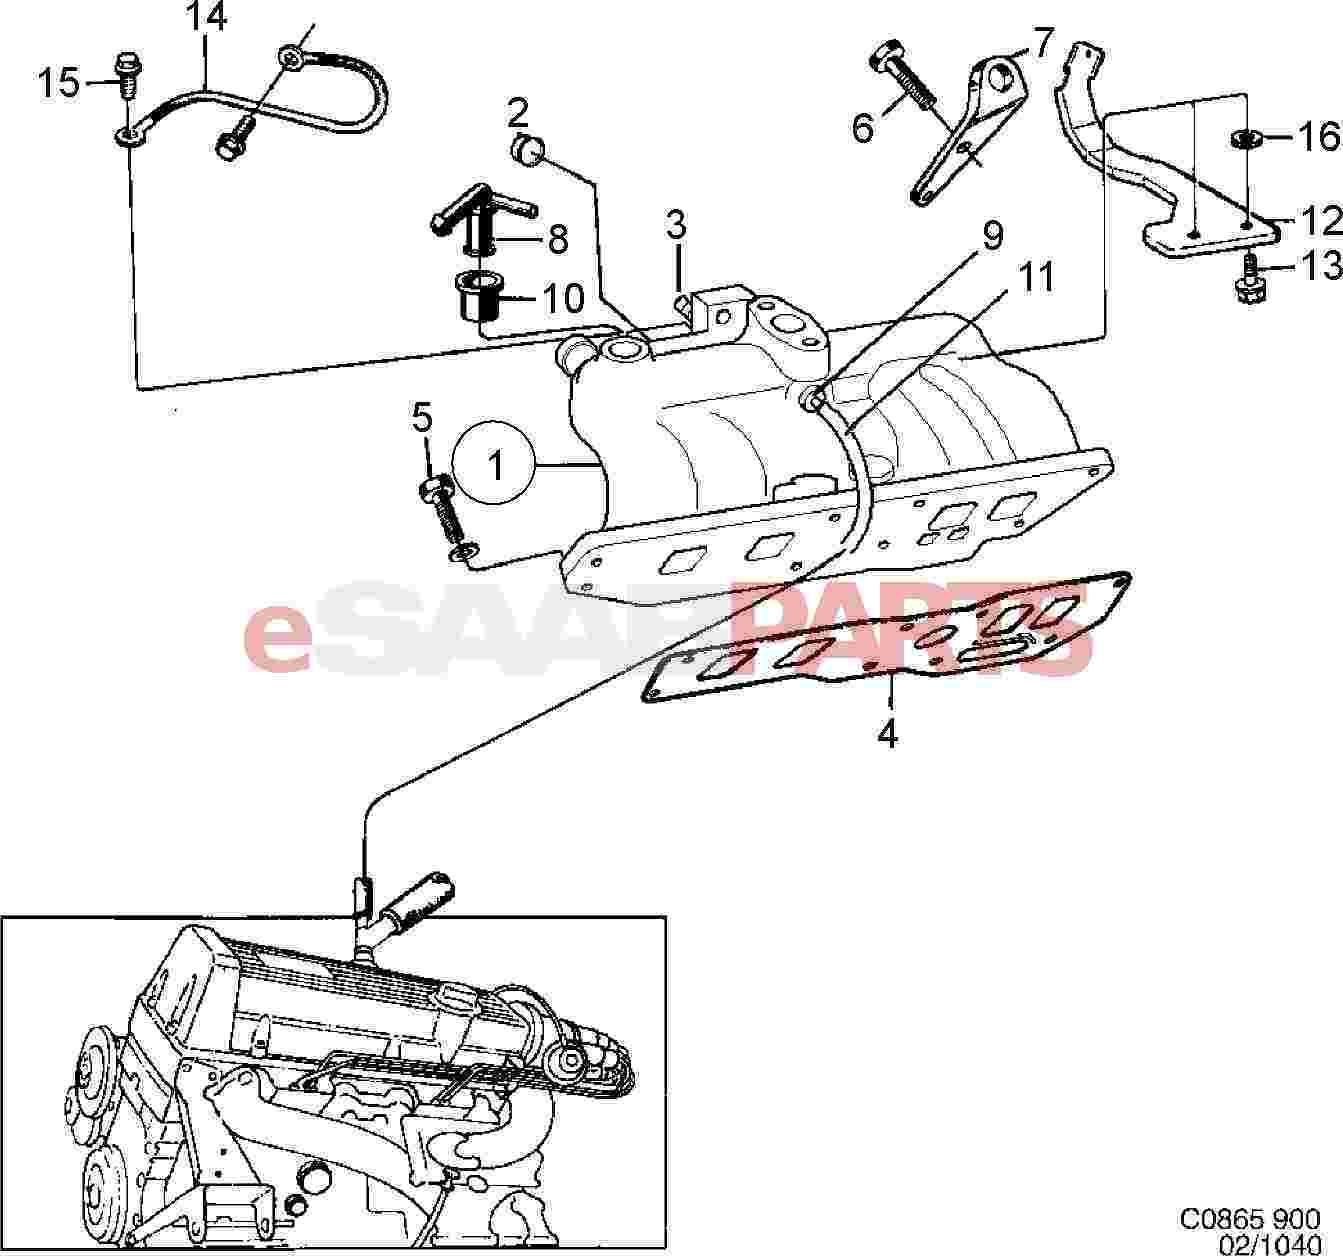 1997 Gmc Savana 1500 Transfer Case Repair Manual in addition RepairGuideContent likewise 1990 Mazda Rx7 Wiring Diagram moreover Saab 93 Fuel Pump Location likewise Saab 900 Transmission Parts Diagram Html. on 1990 saab 900 engine diagram